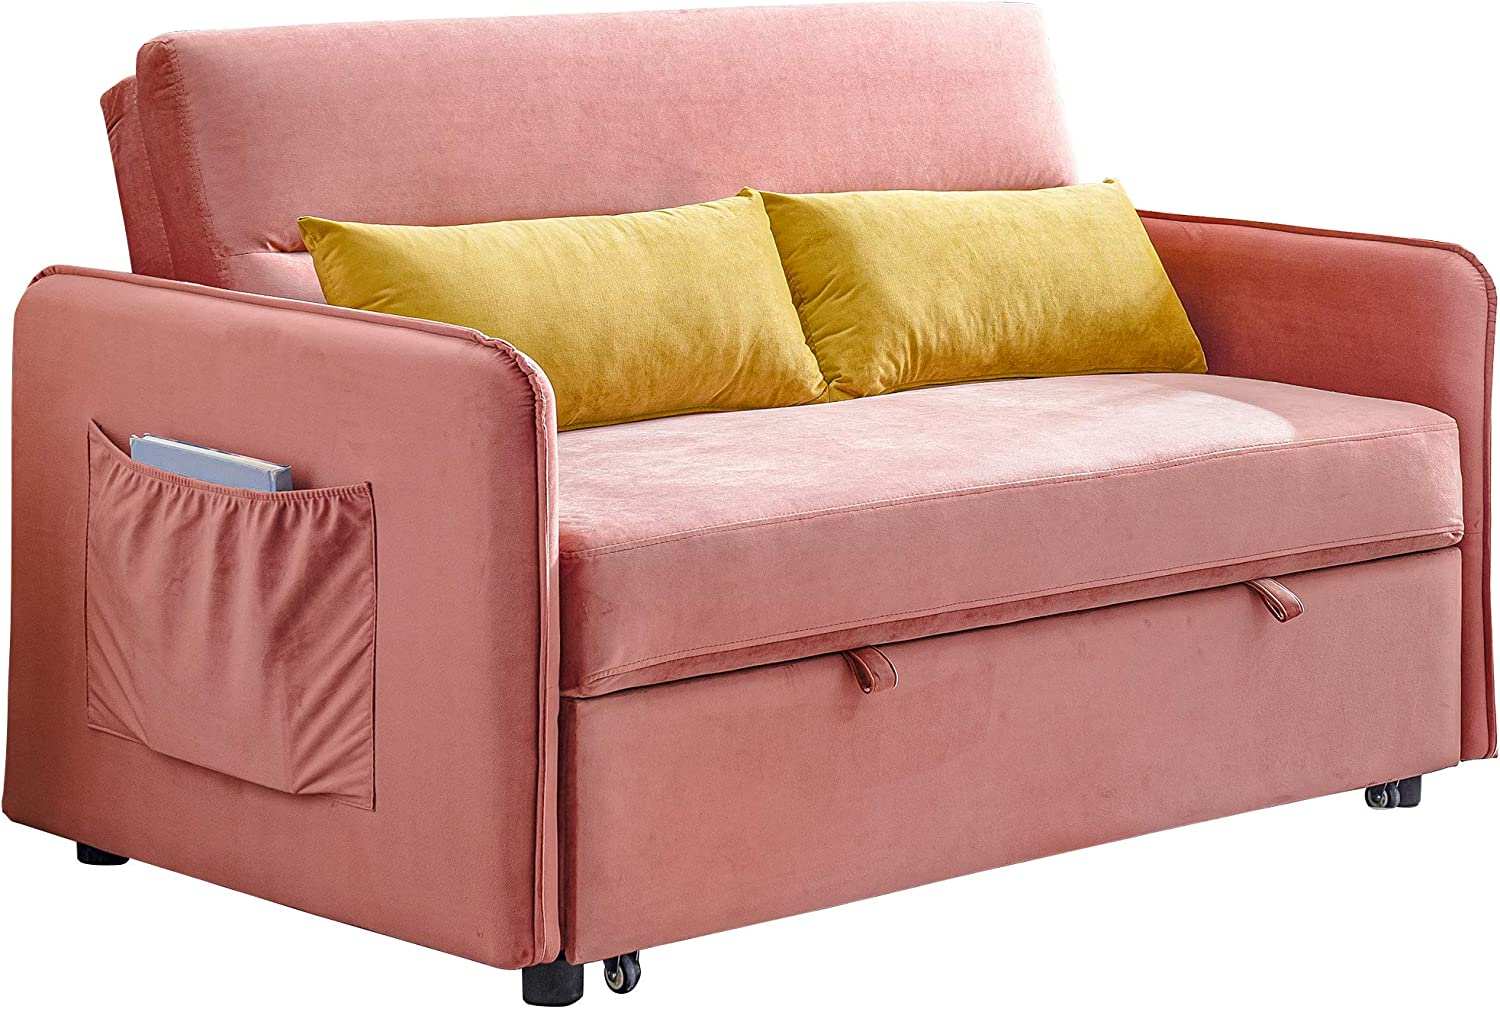 Merax Sleeper Couch Small Velvet Sofa for Living Room Or Bedroom Including Pull Out Bed and 2 Sofabed, Compact, Pink